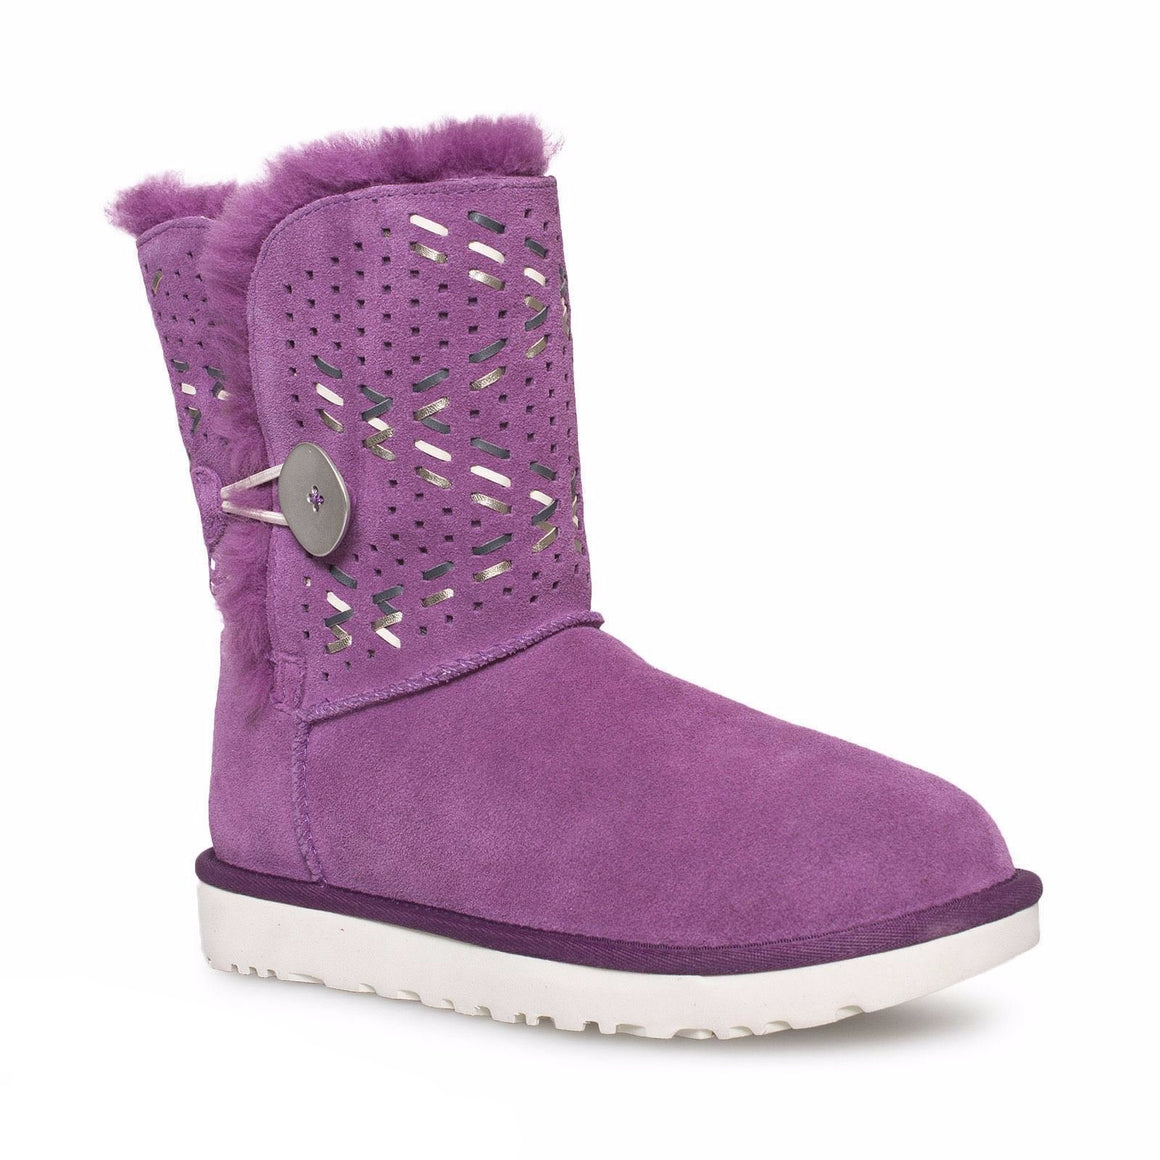 UGG Bailey Button Tehuano Purple Passion Boots